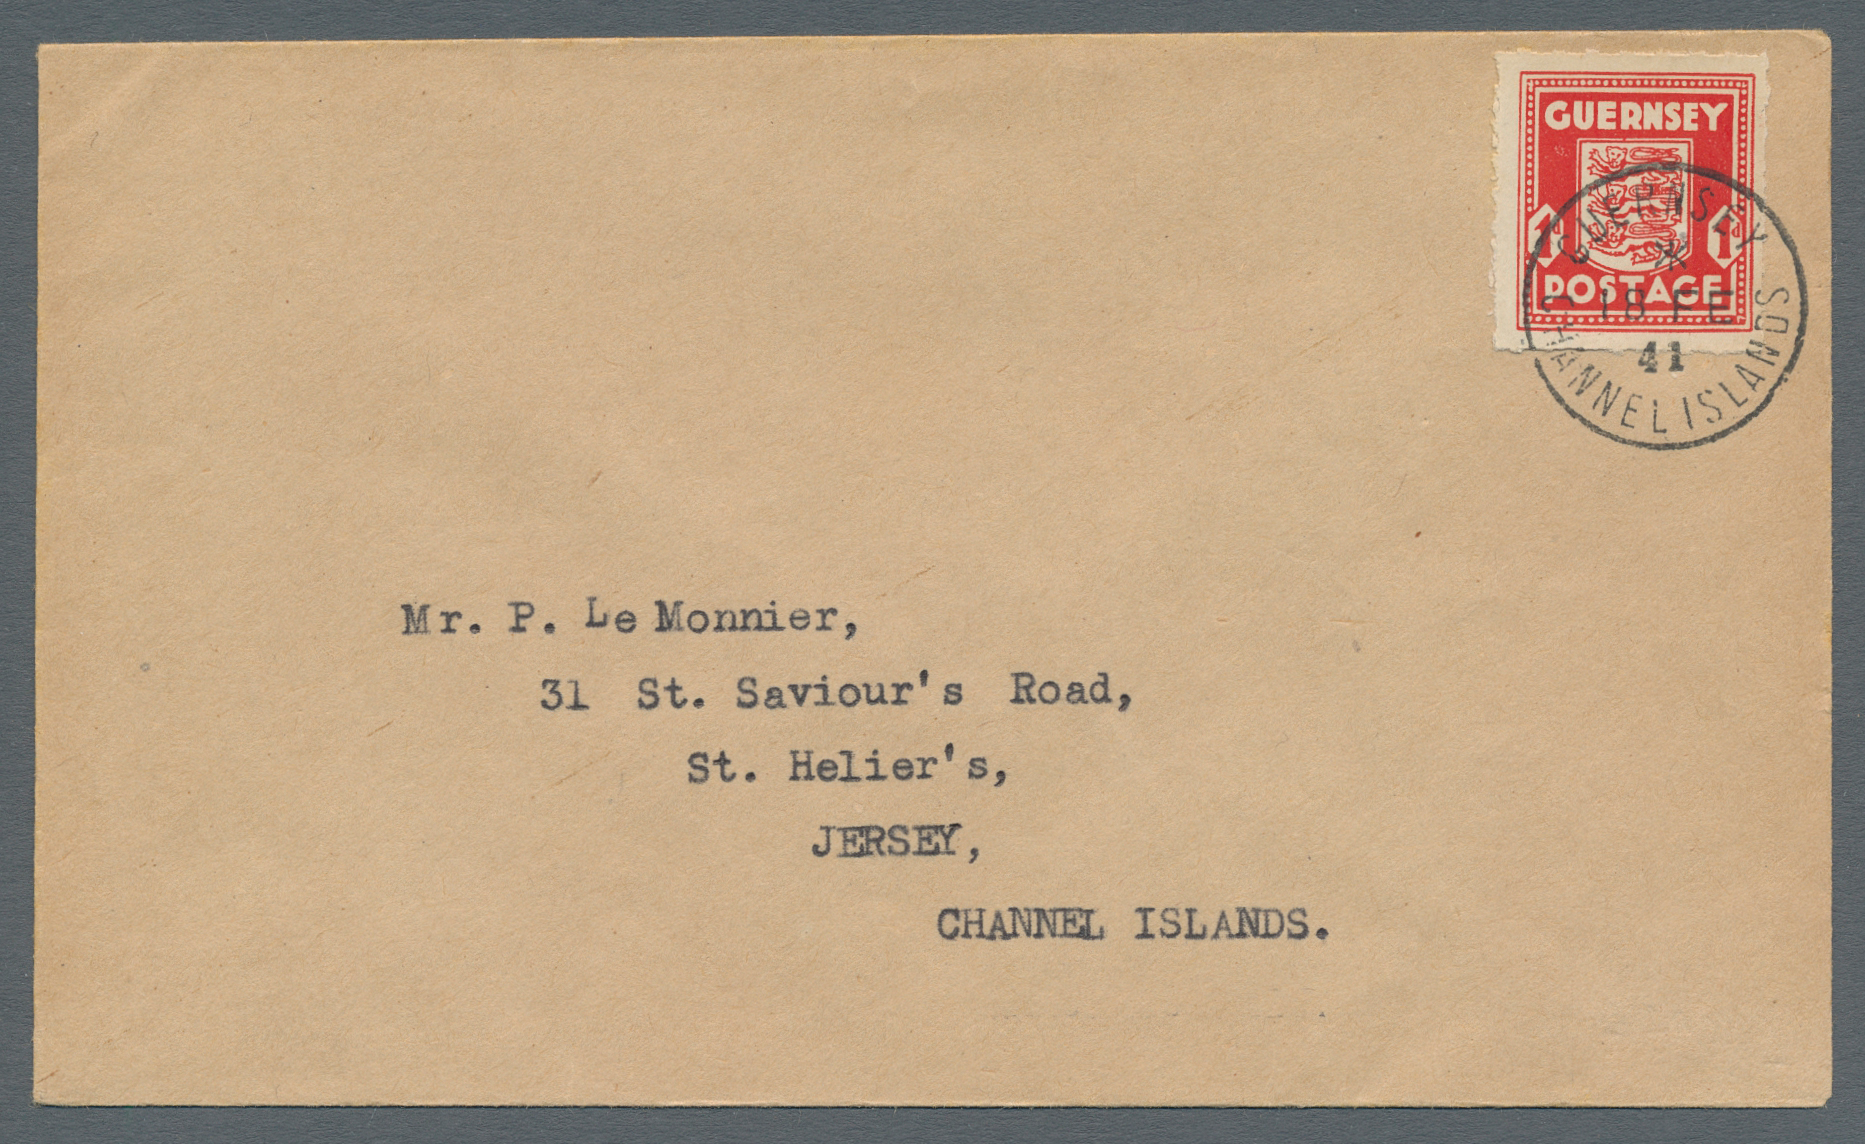 Lot 19439 - Dt. Besetzung II WK - Guernsey  -  Auktionshaus Christoph Gärtner GmbH & Co. KG Auction #40 Germany, Picture Post Cards, Collections Overseas, Thematics